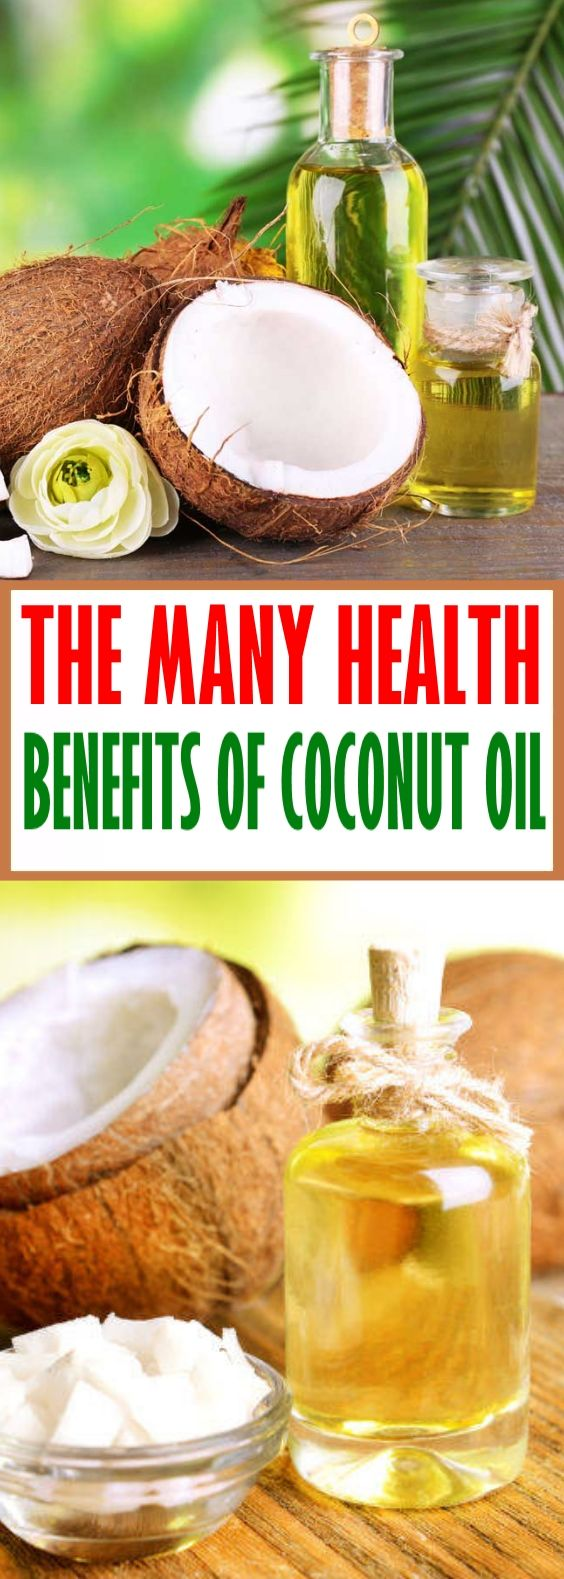 The Many Health Benefits of Coconut Oil